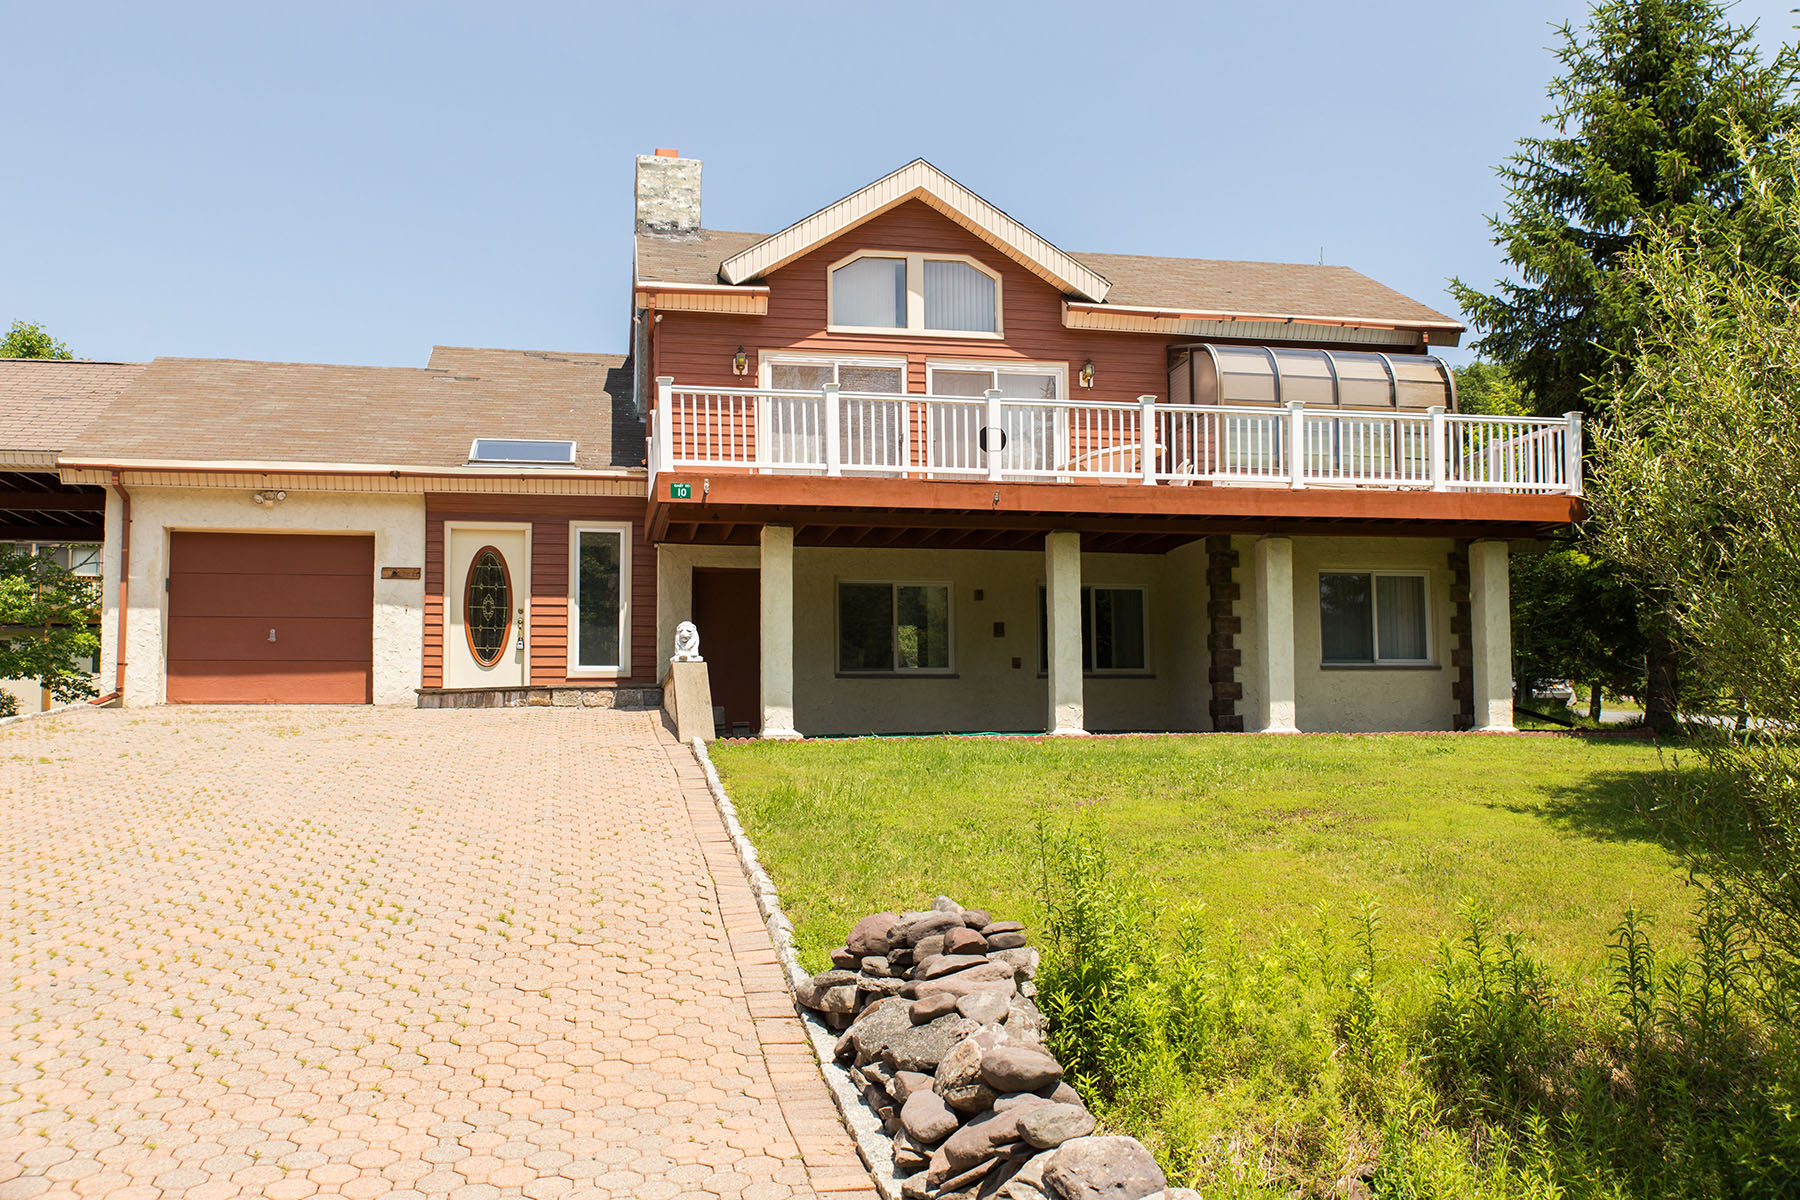 Single Family Home for Sale at Contemporary Ski Getaway 10 Gaby Road Hunter, New York 12442 United States